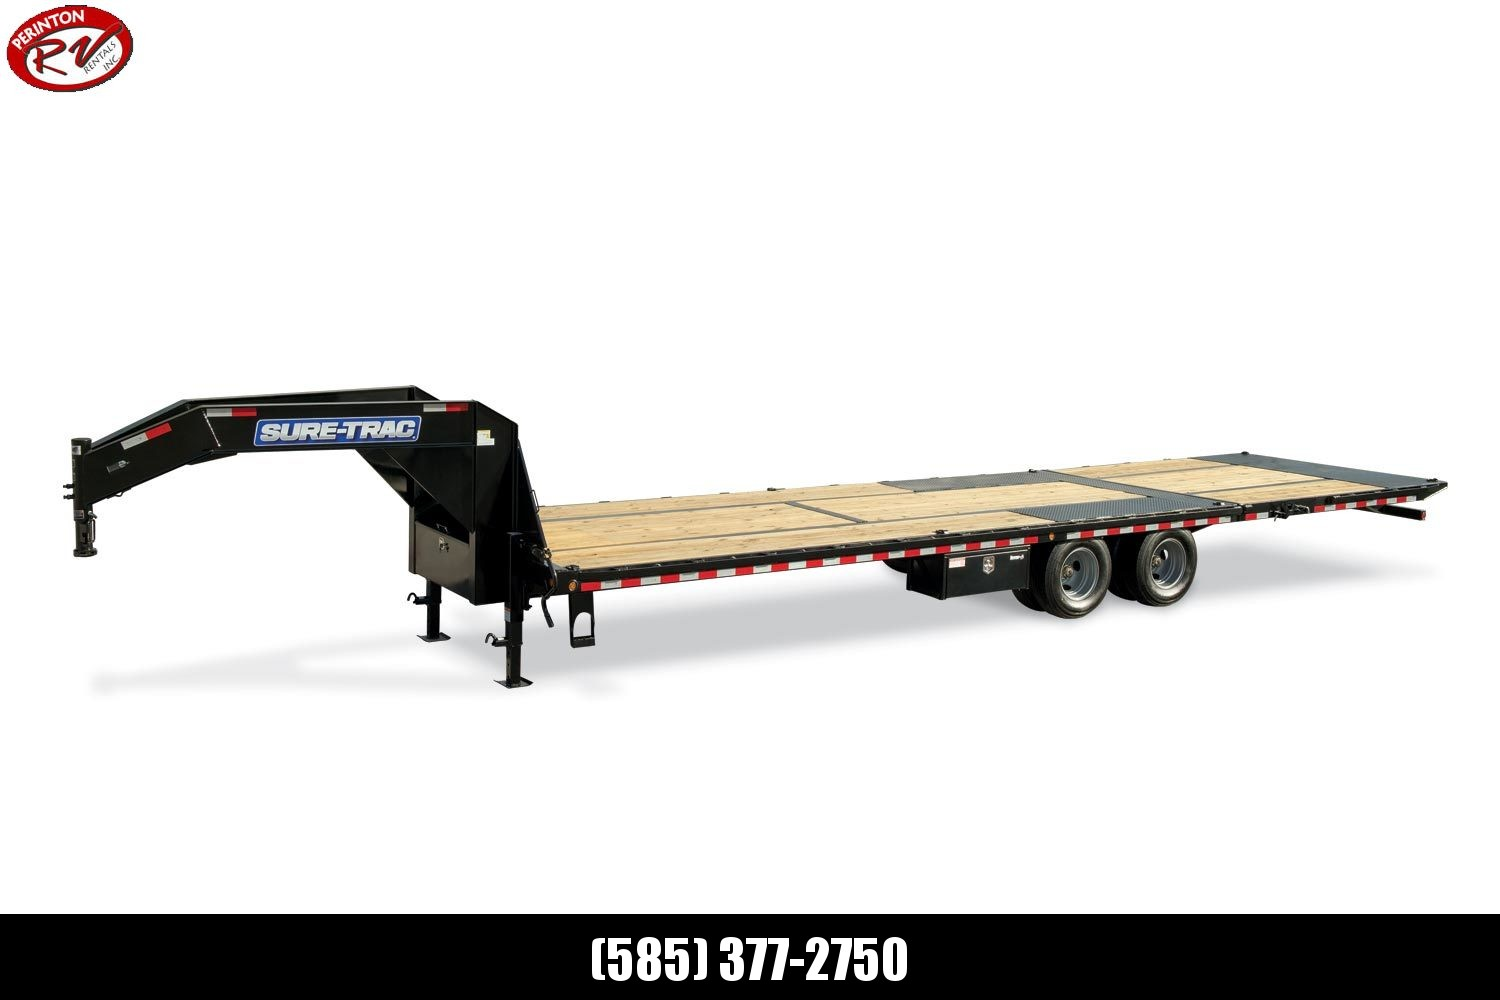 2020 Sure-Trac 8.5x20+10 LowPro Hyd Deckover Tandem GN